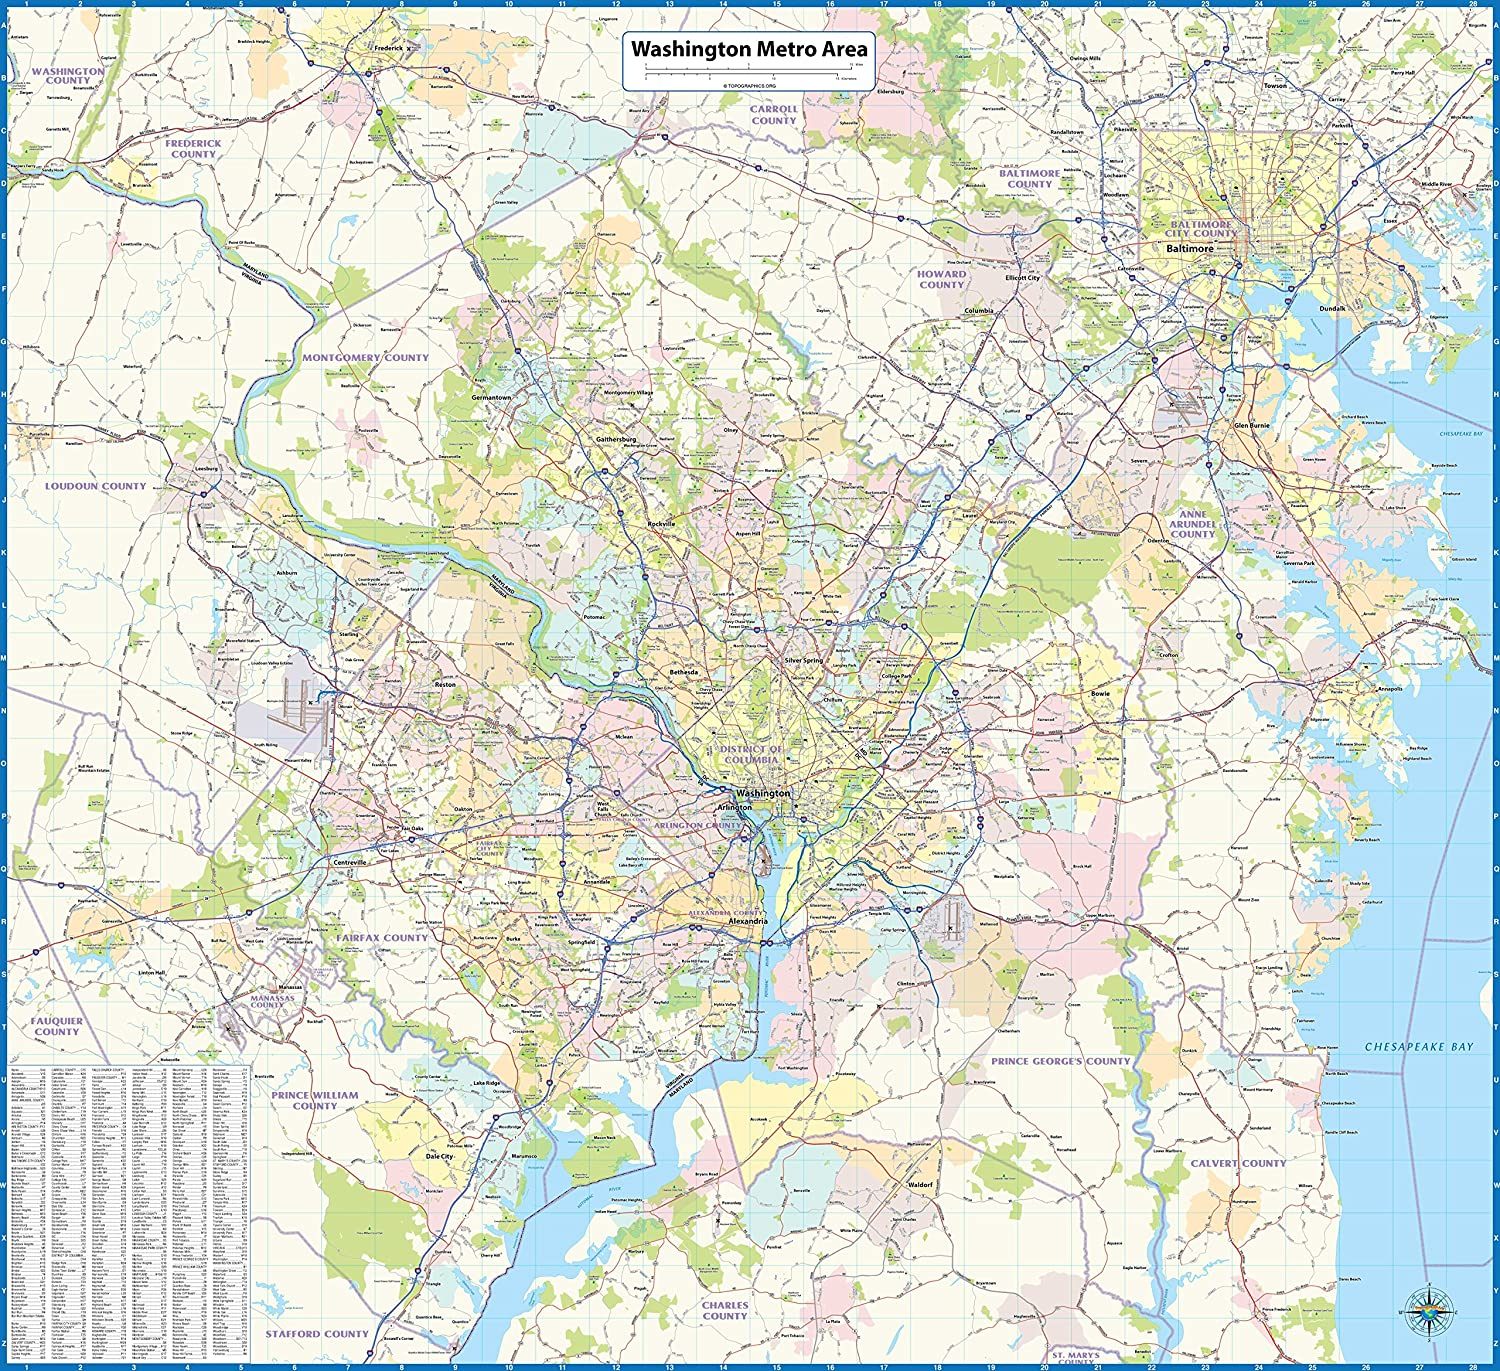 Map Of Washington Dc Metro Amazon.: Washington DC Metro Area Laminated Wall Map : Office